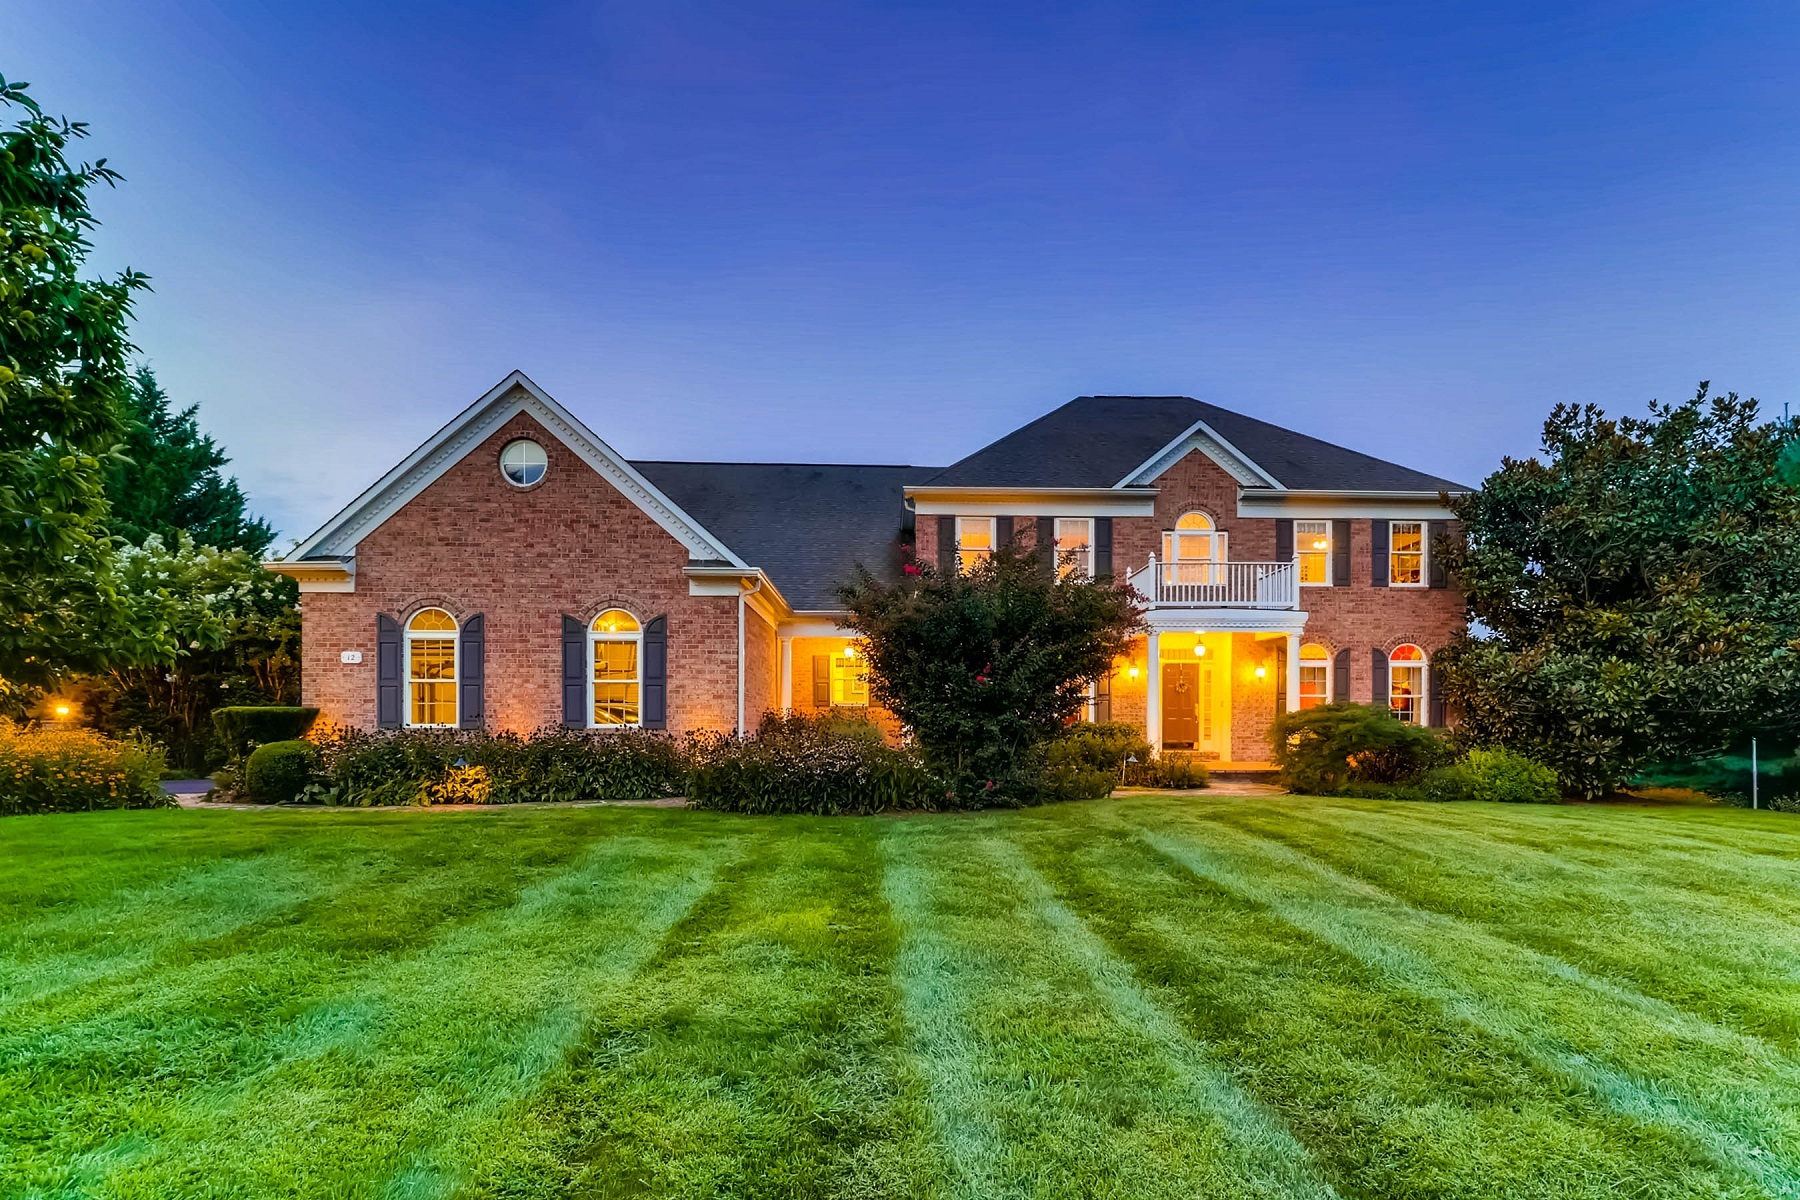 Single Family Home for Sale at Reisterstown 12 Deer Creek Court, Reisterstown, Maryland, 21136 United States